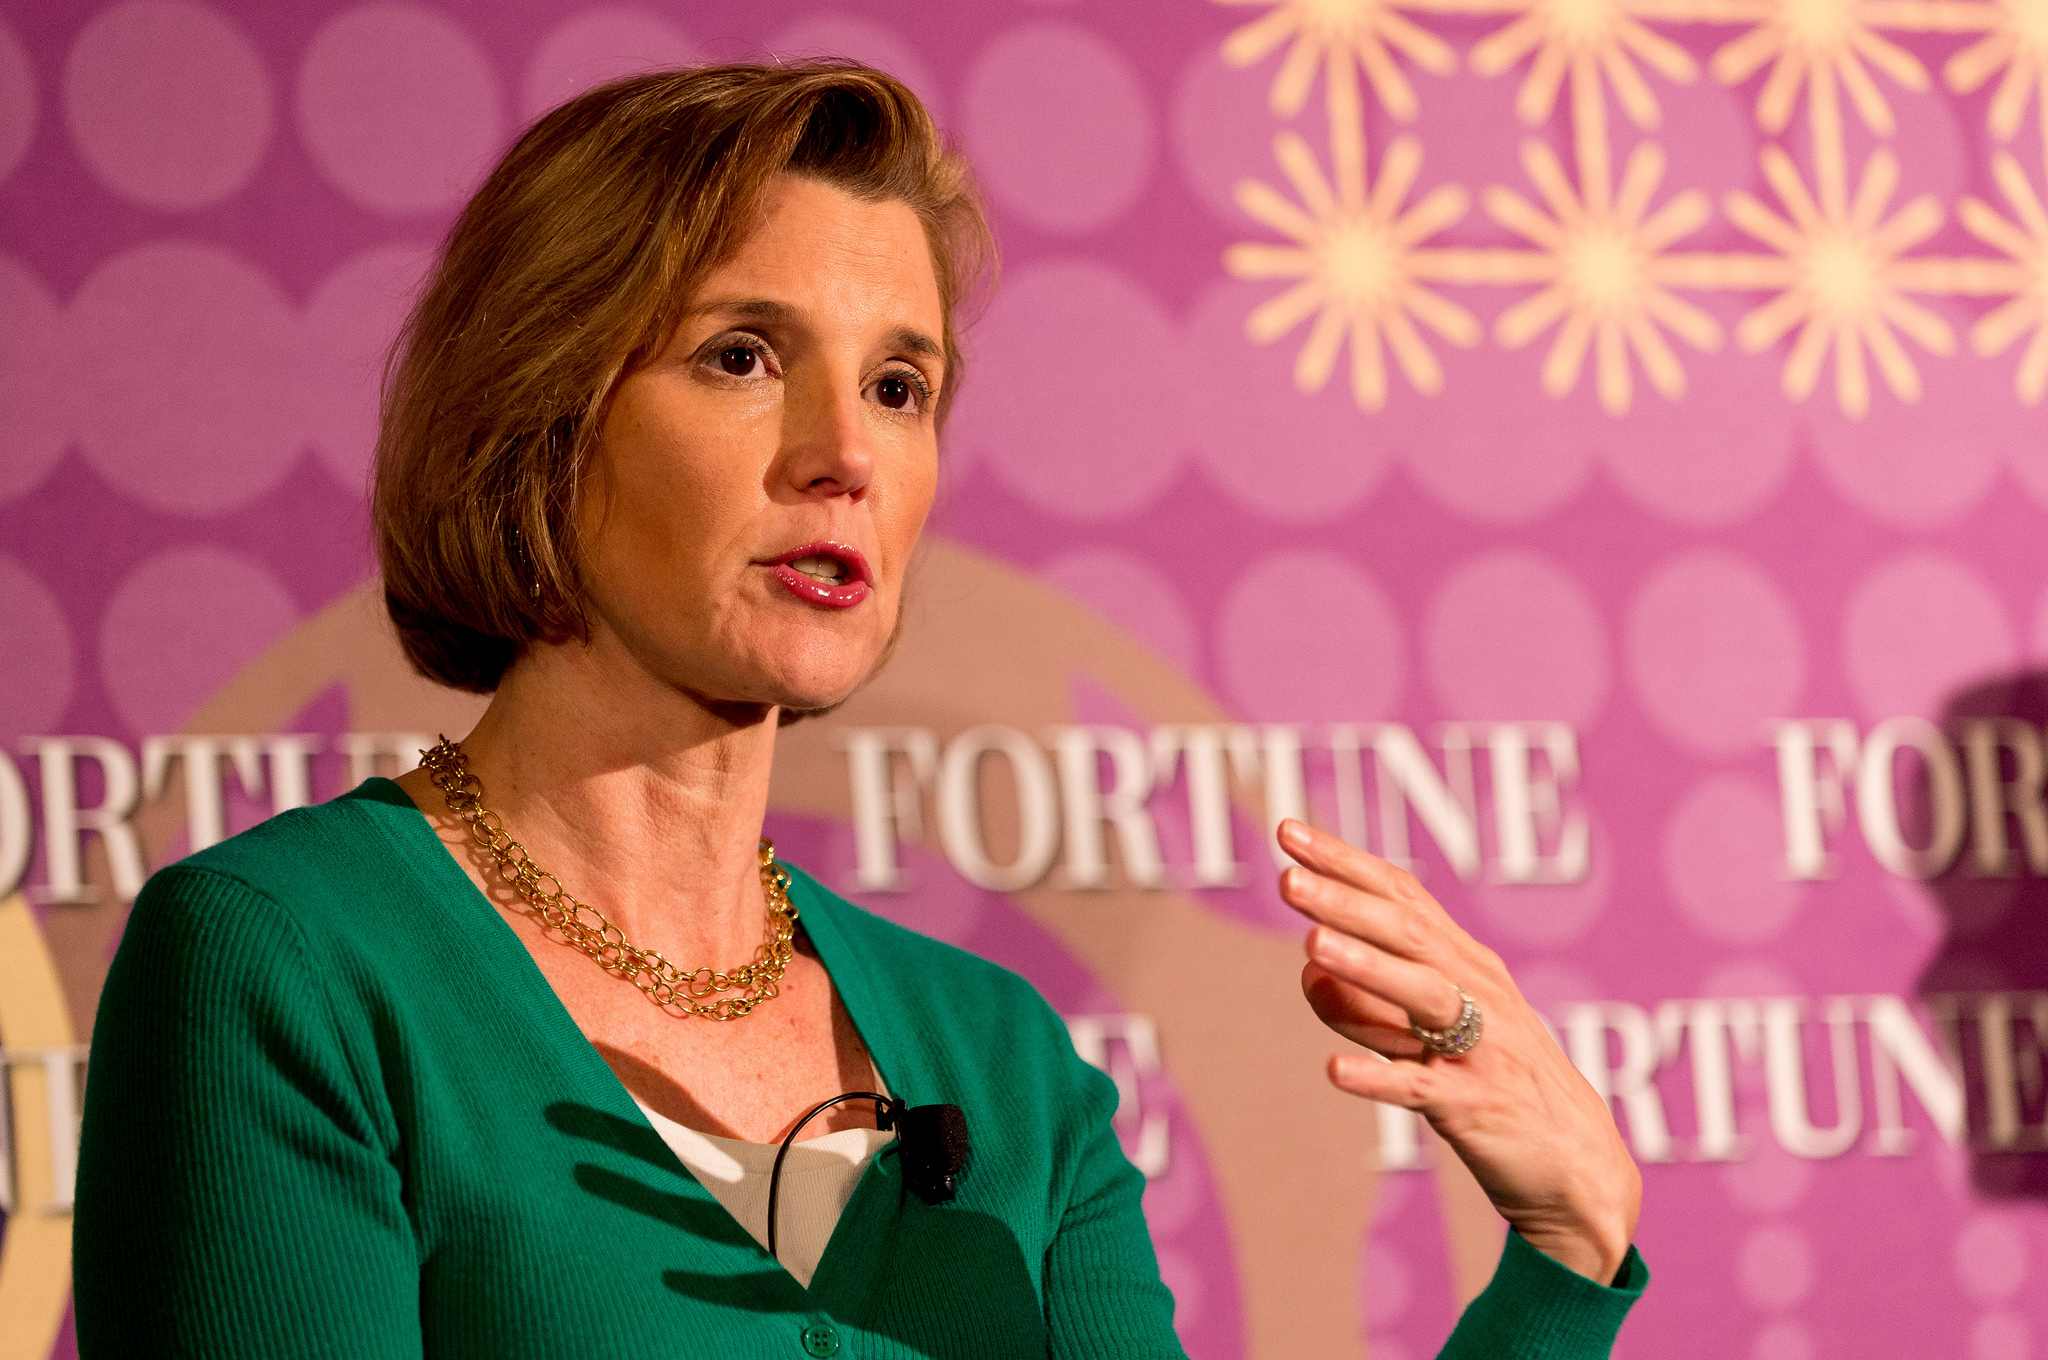 Ellevest CEO Sallie Krawcheck speaks at Fortune's Most Powerful Women Next Gen Summit in San Francisco in December 2014.